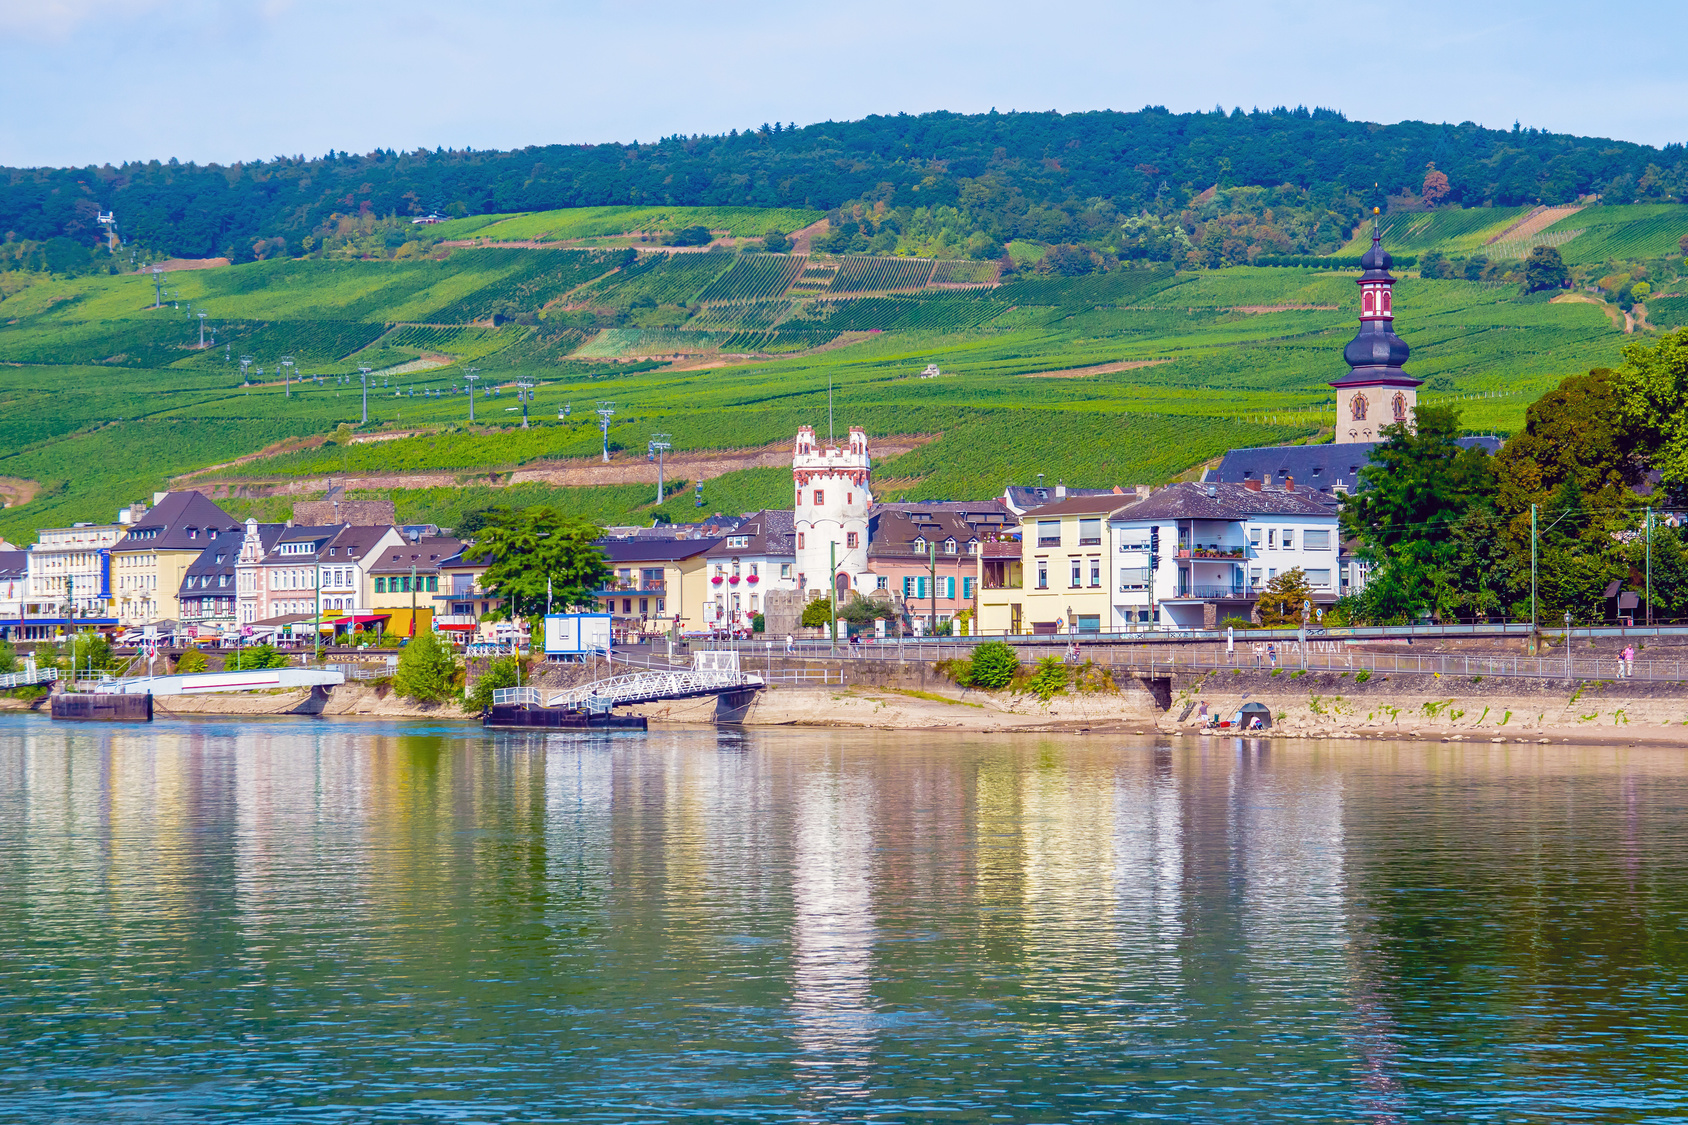 Rudesheim_town_in_the_Rhine_Gorge_140528836_Subscription_Monthly_M.jpg